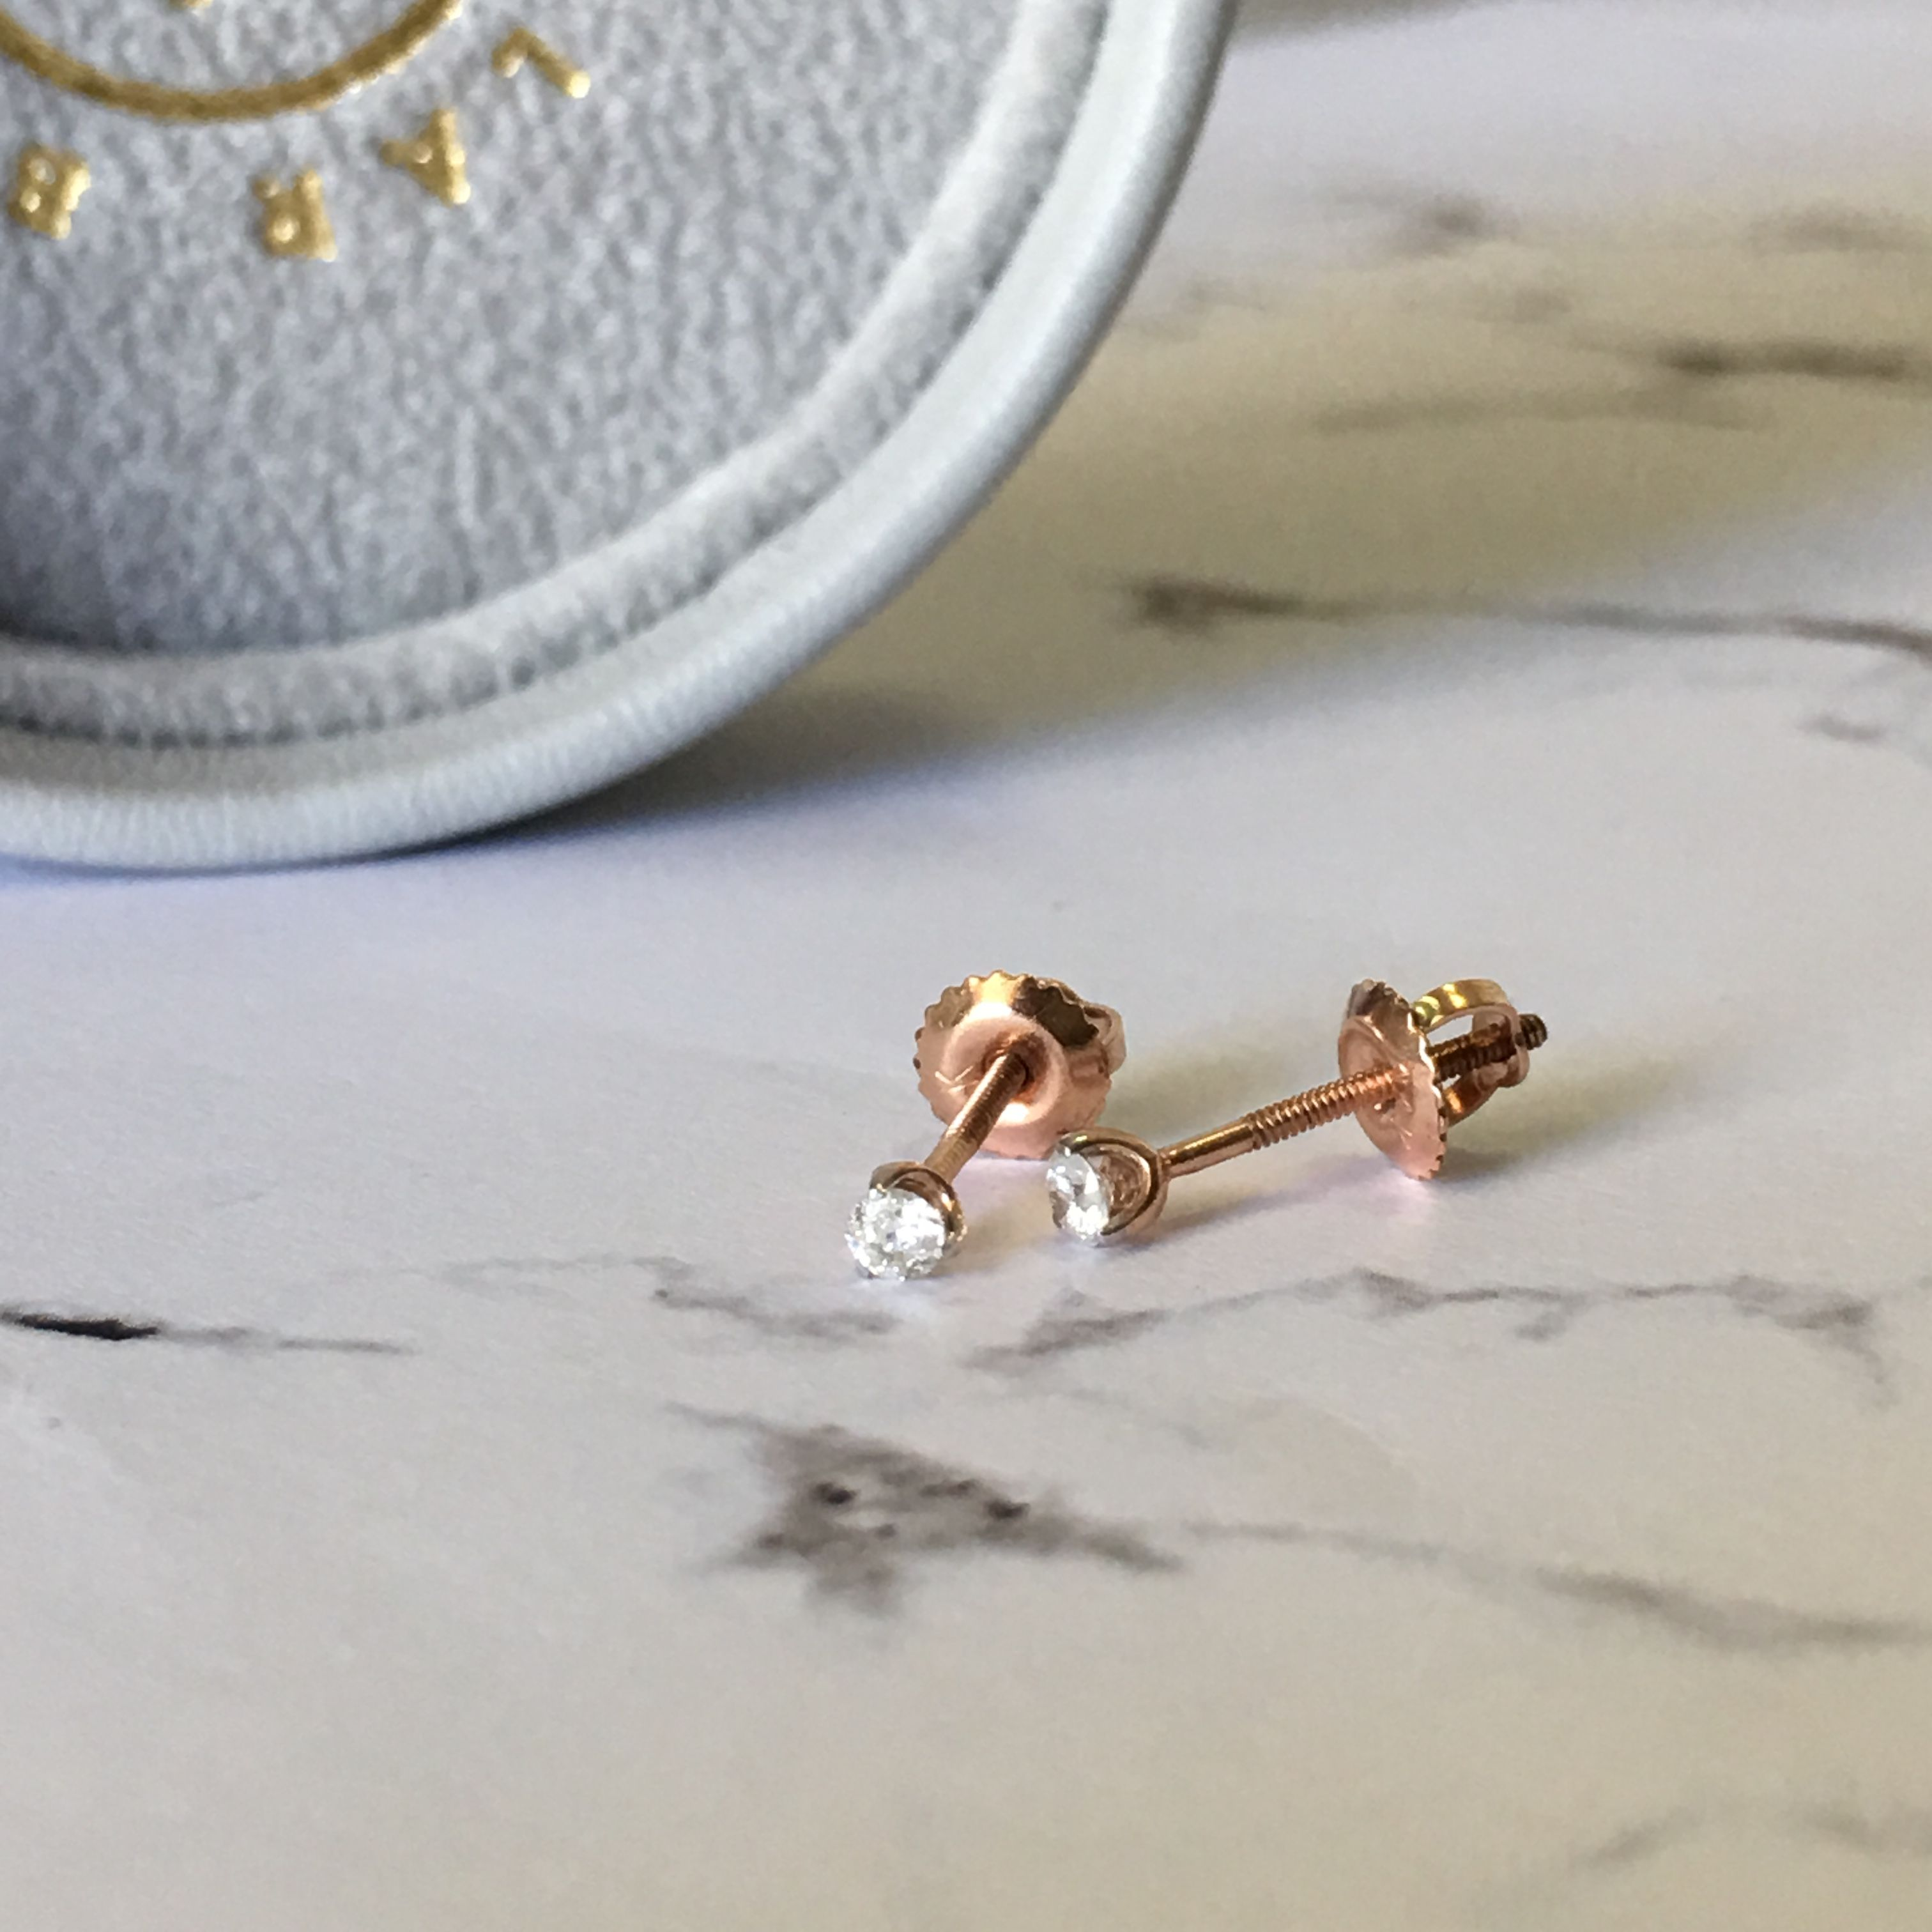 Suha 0 15CT Diamond Earrings featured in Rose Gold suitable for